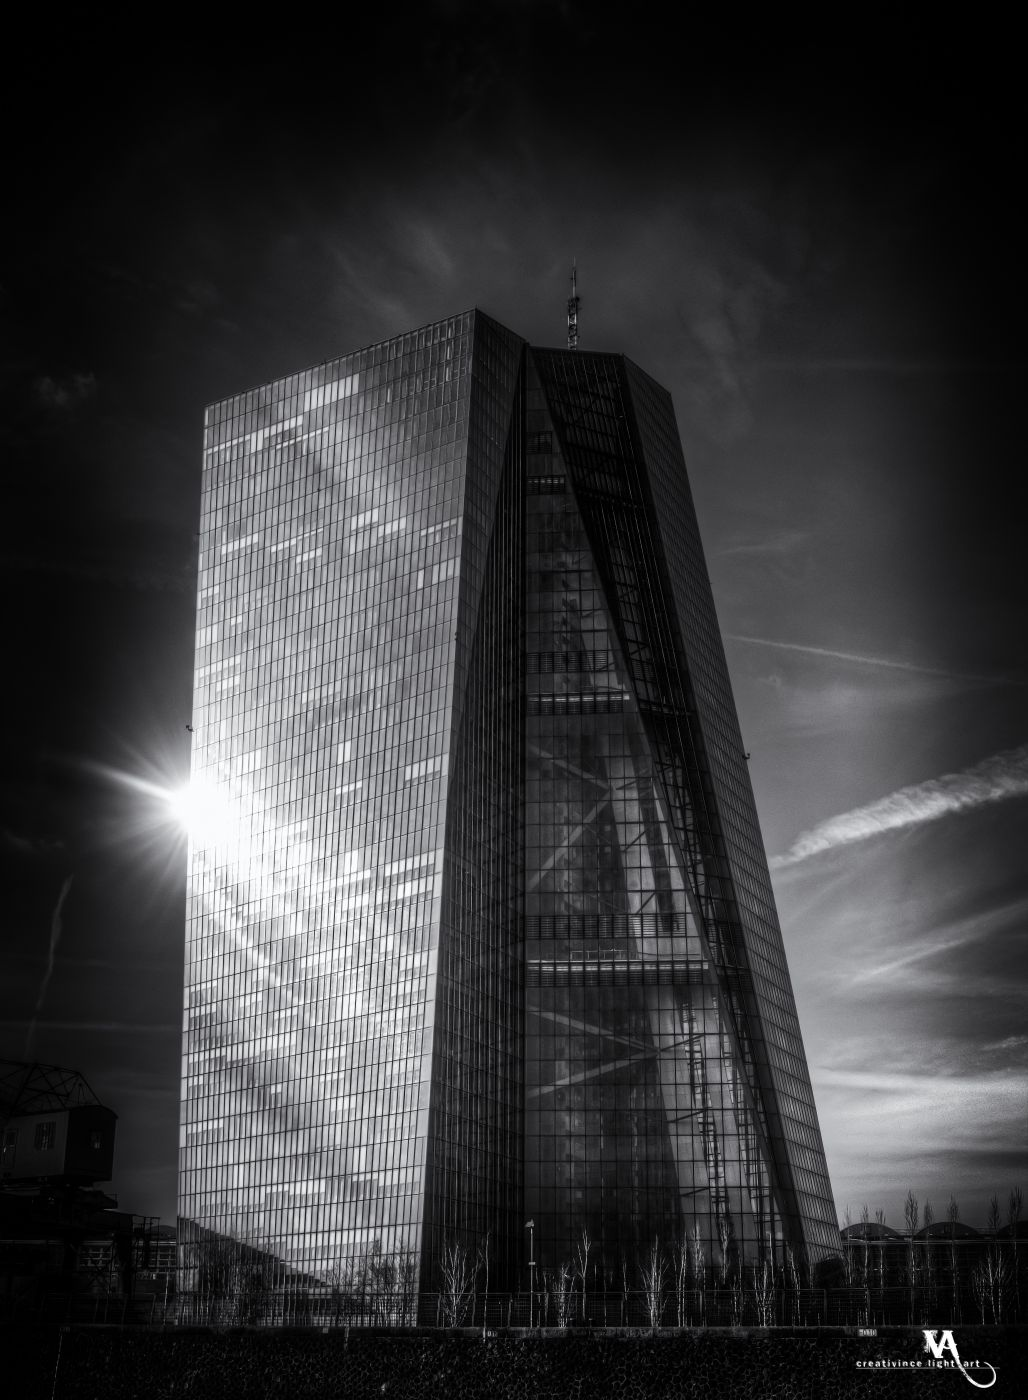 Seat of the European Central Bank, Germany